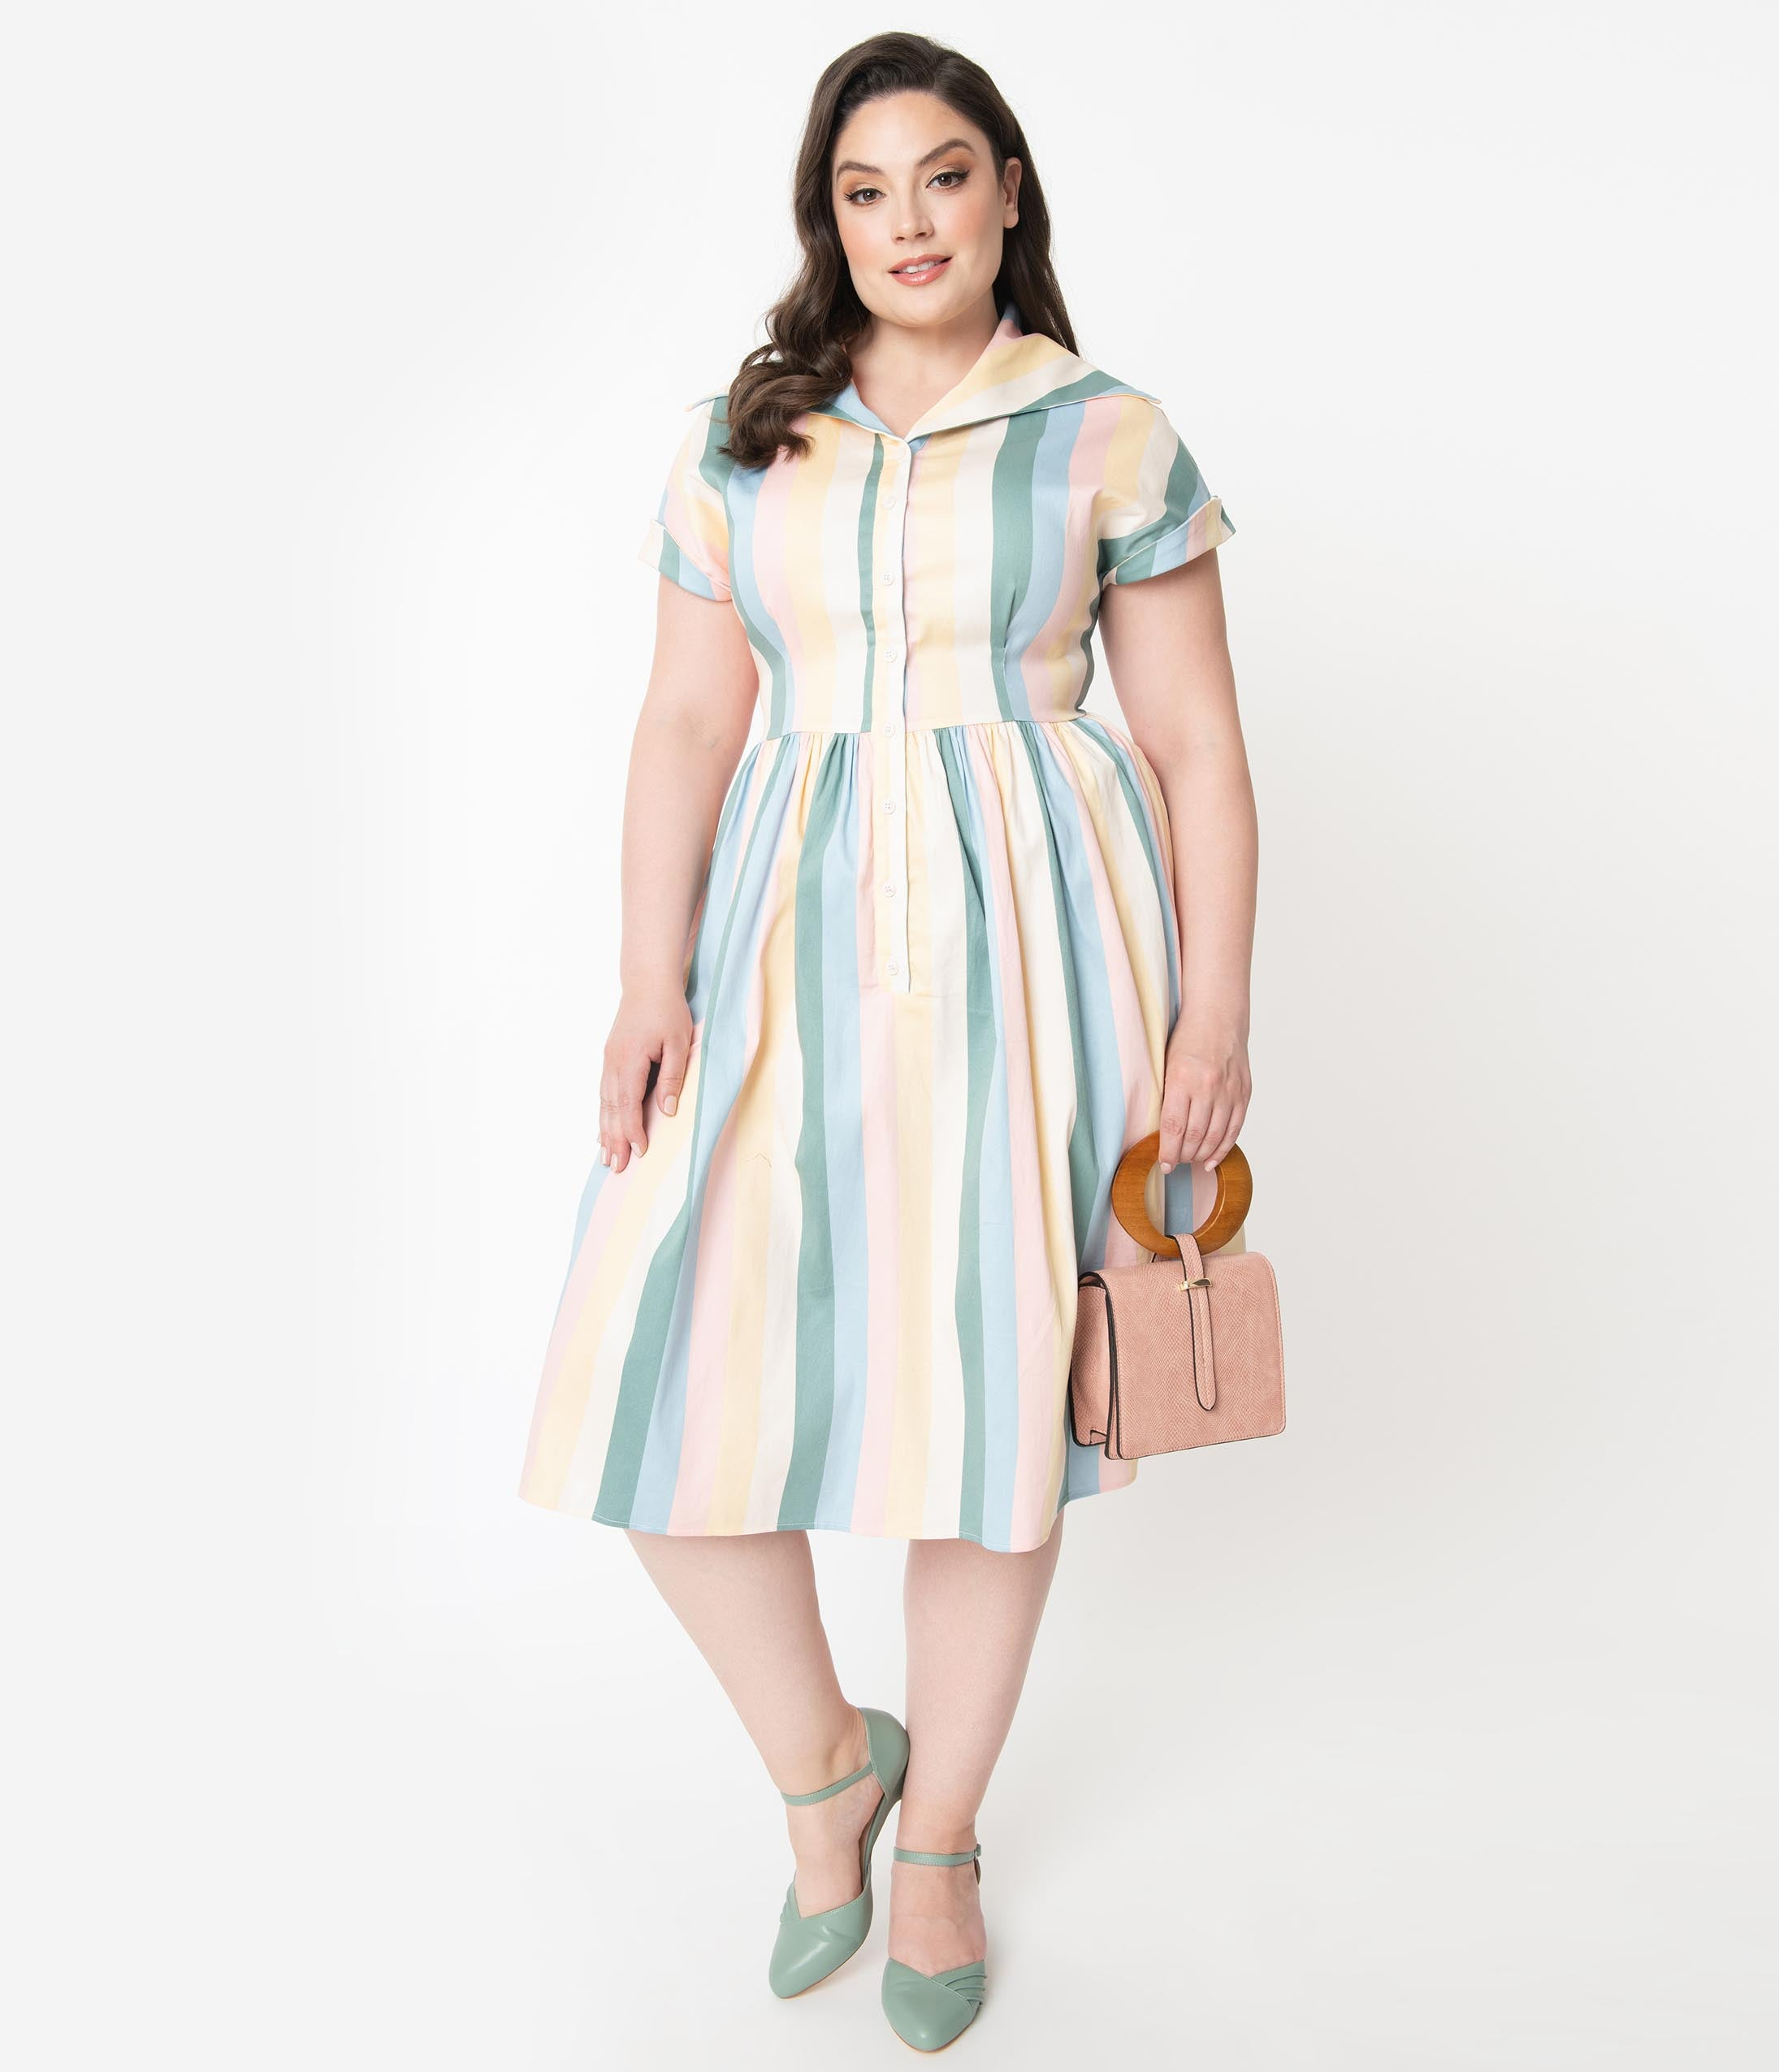 1950s Plus Size Dresses, Swing Dresses Collectif Plus Size Pastel Teacup Stripe Judy Swing Dress $92.00 AT vintagedancer.com